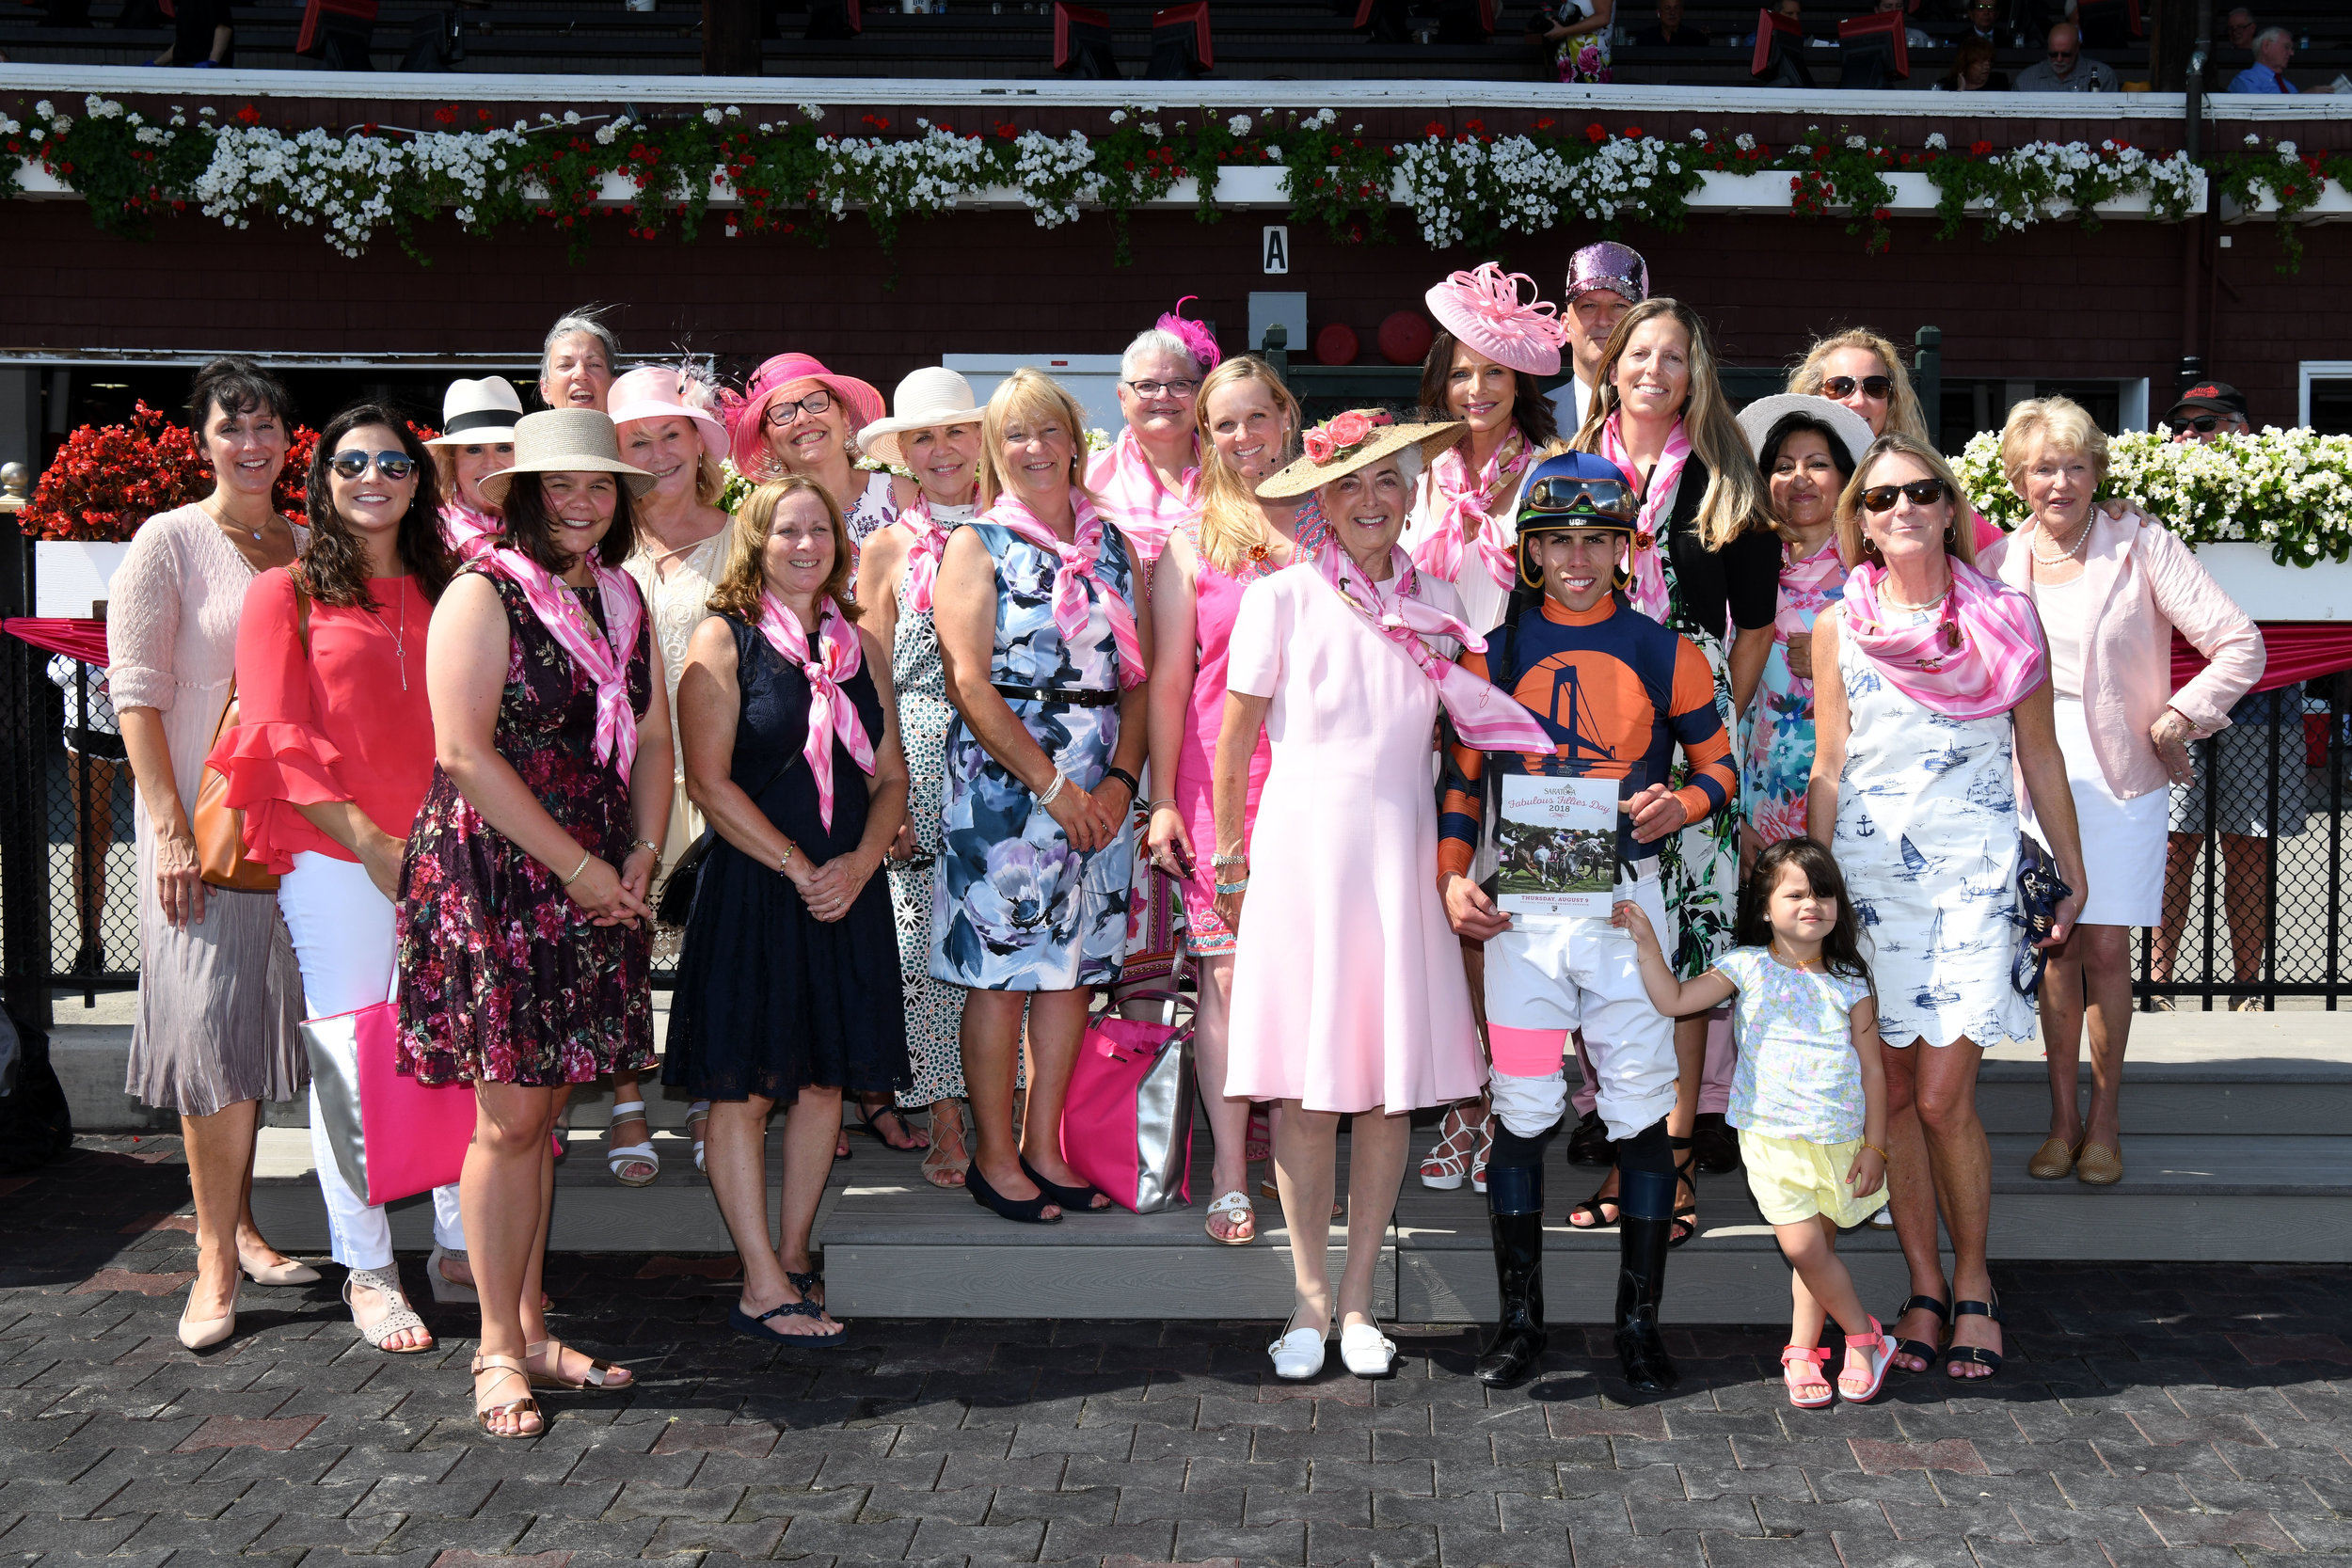 Vivien Malloy and Friends in the Winner's Circle at Saratoga Racetrack honoring her in Race 4 of Fabulous Fillies Day. Photo courtesy of Adam Coglianese